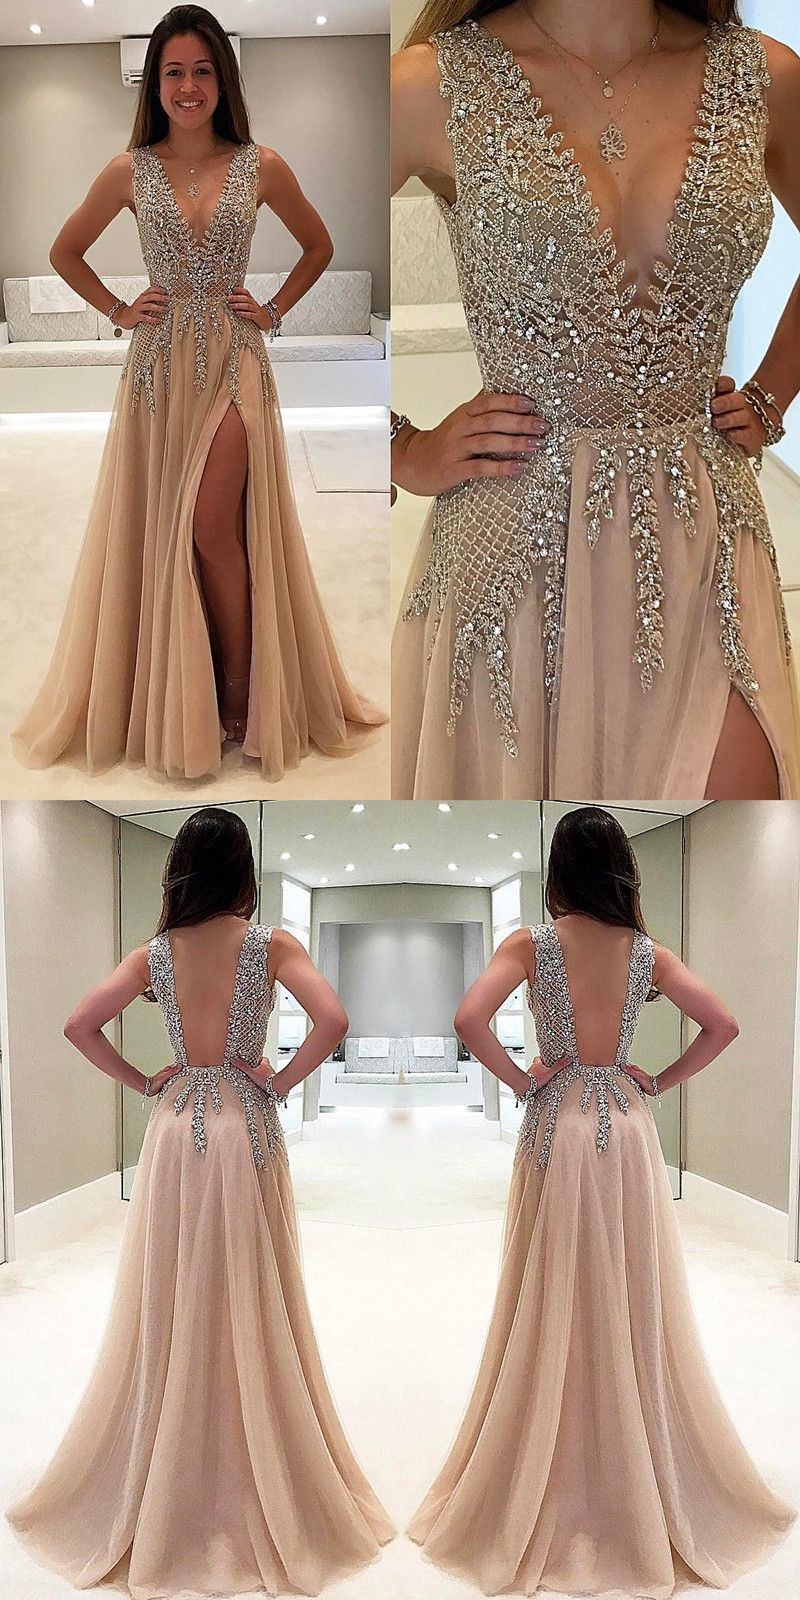 2017 prom dresses,modest prom dresses,unique